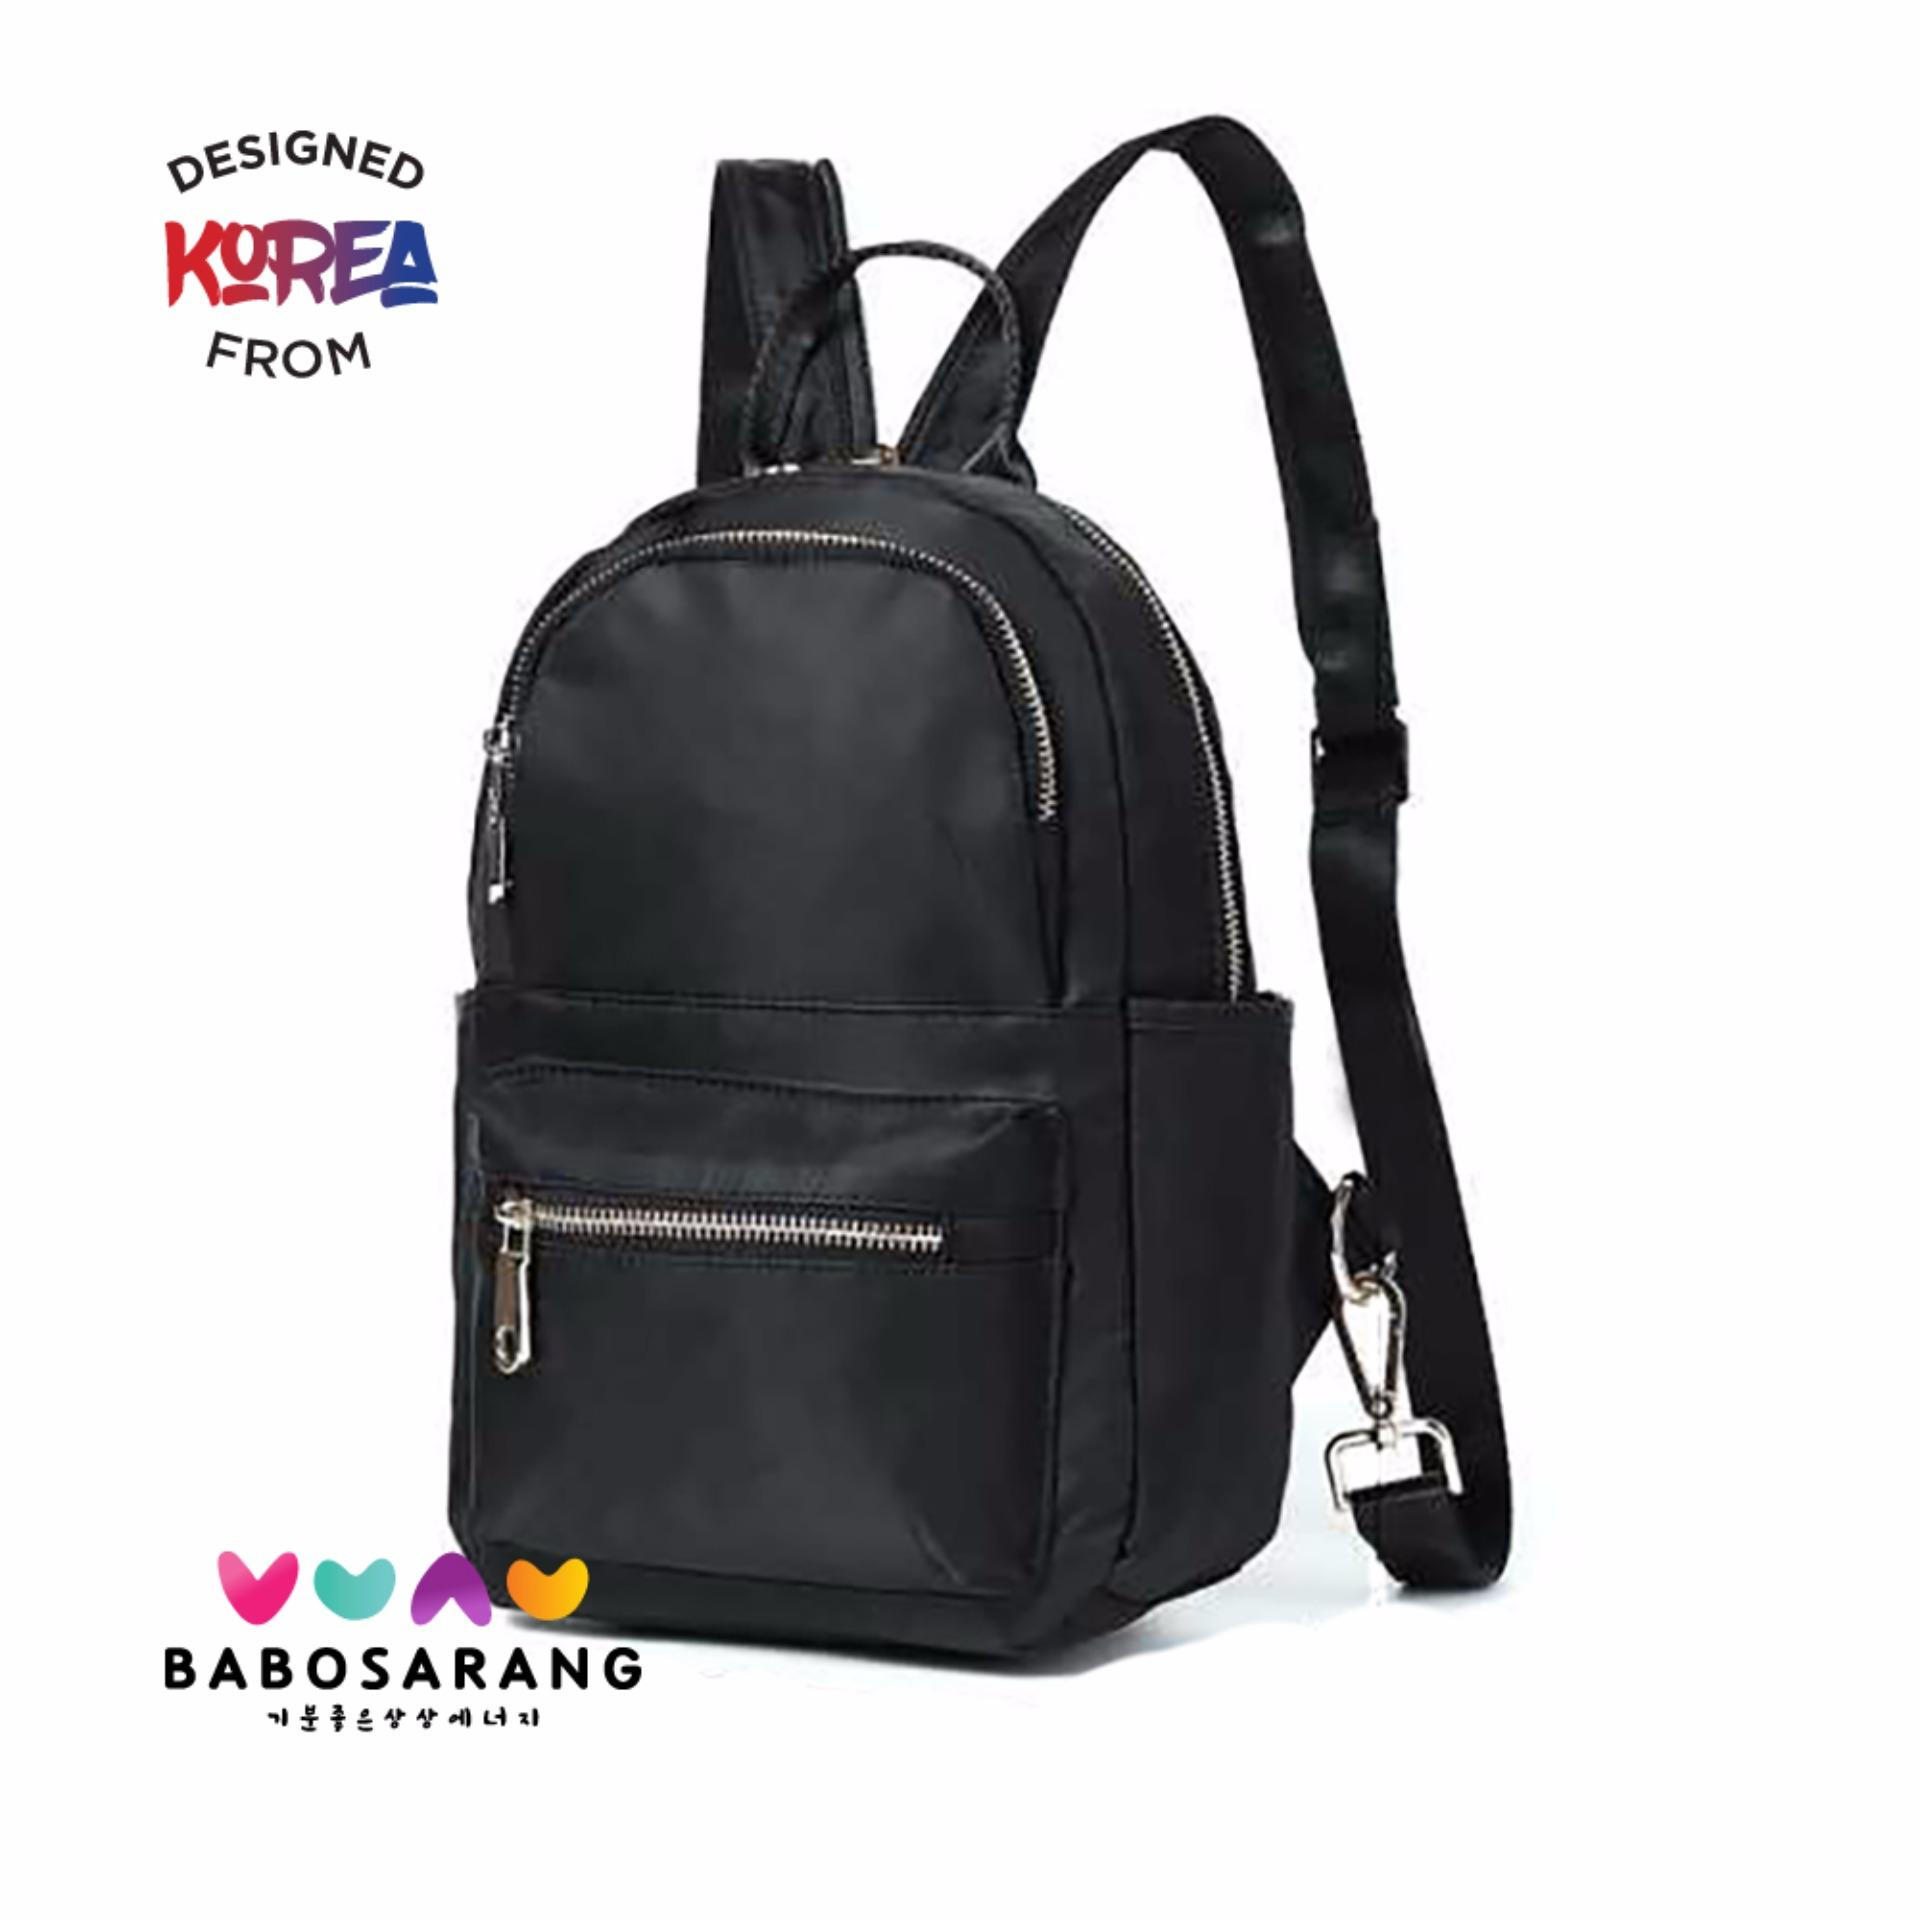 Promo Korean Fashion Style Babosarang Tas Ransel Batam Wanita Backpack Korea Model Fashion Gothic Style Bs2